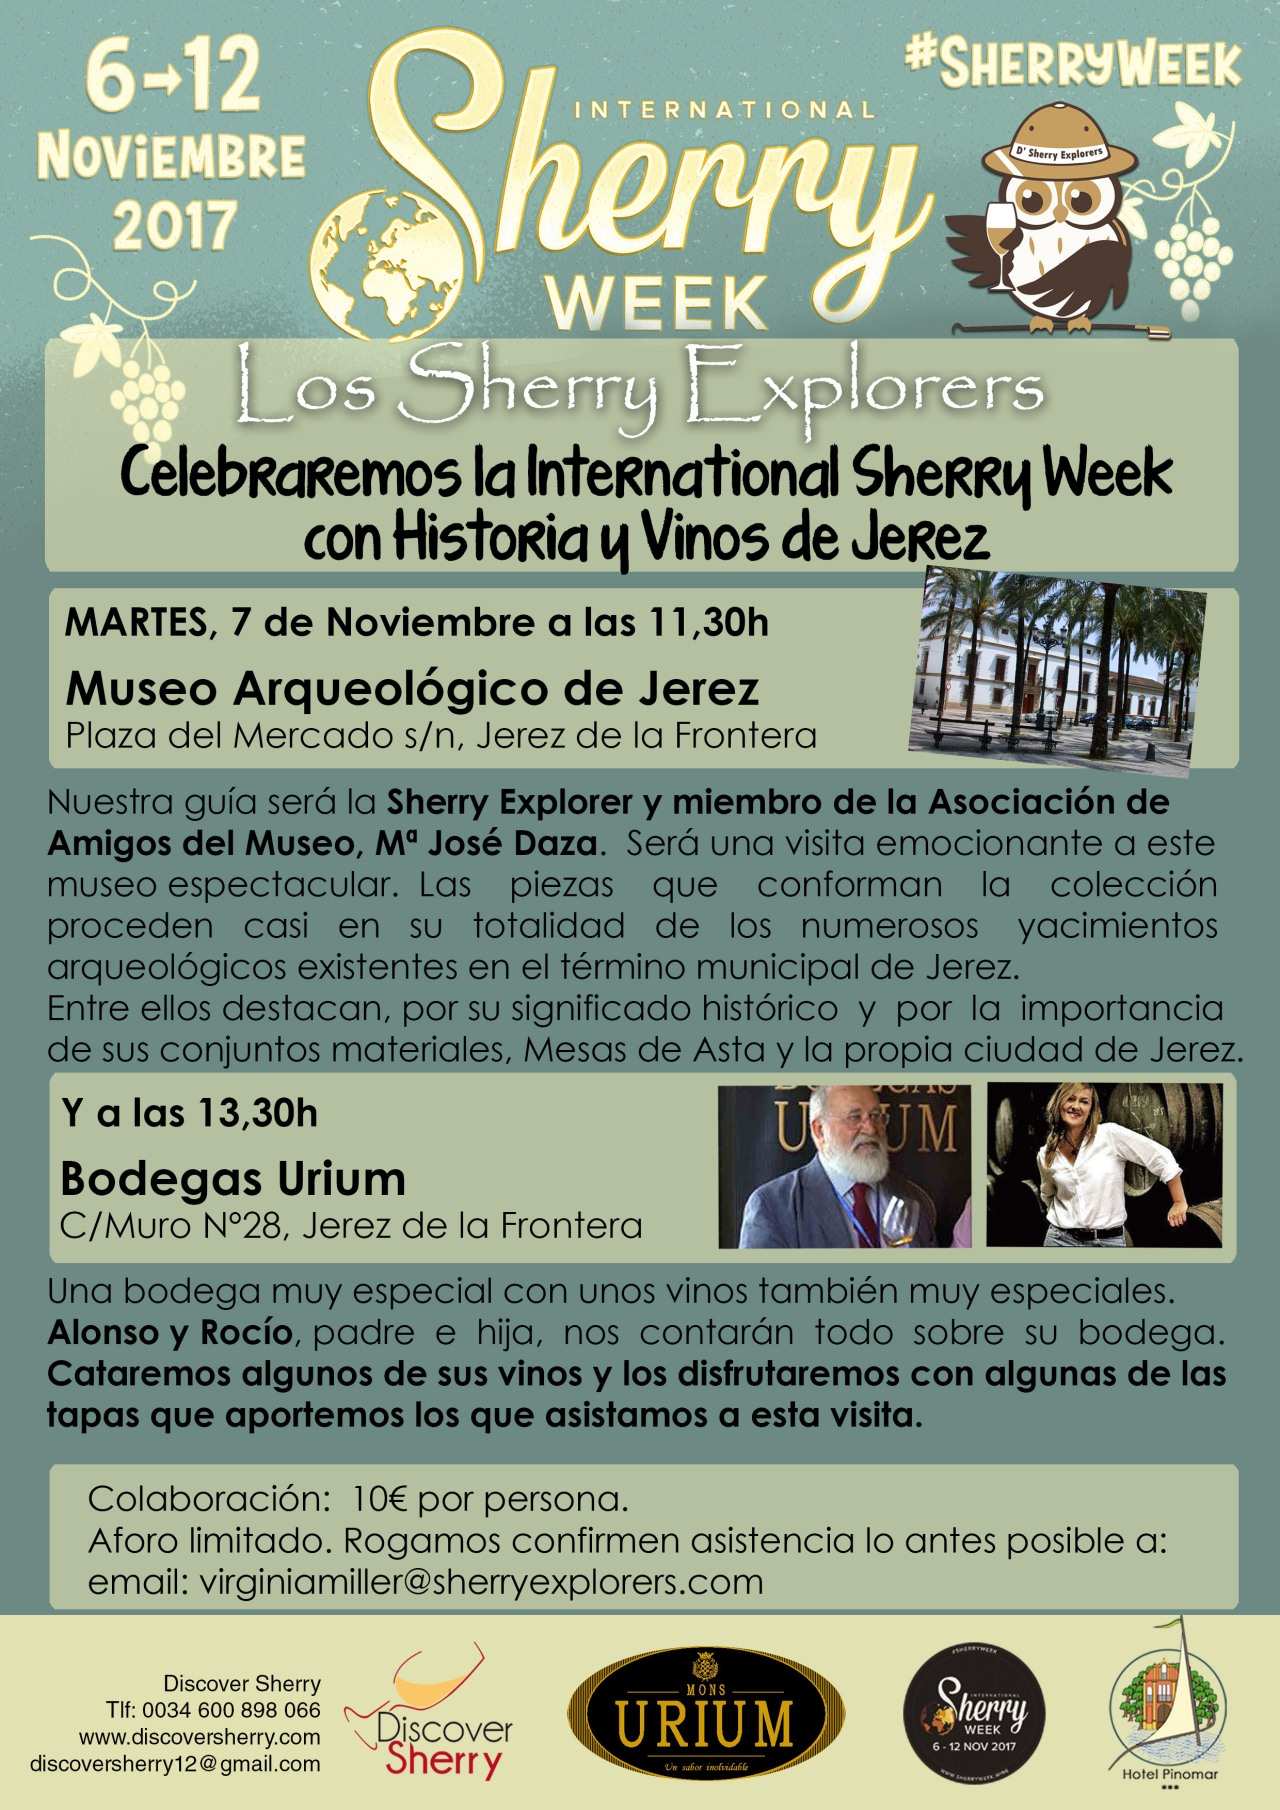 International Sherry Week: D´Sherry Explorers visitan el Museo Arqueológico y la Bodega Urium. (Spanish)